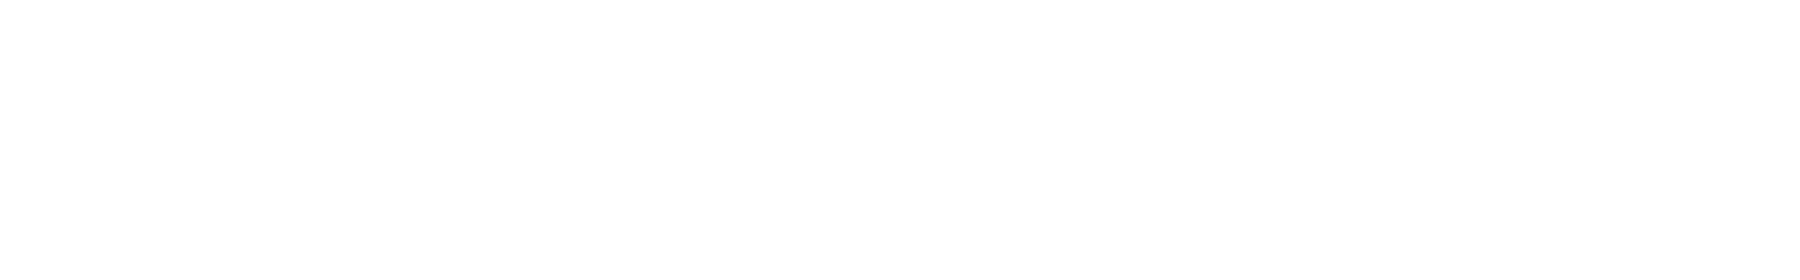 veh1 cutted sounds   111